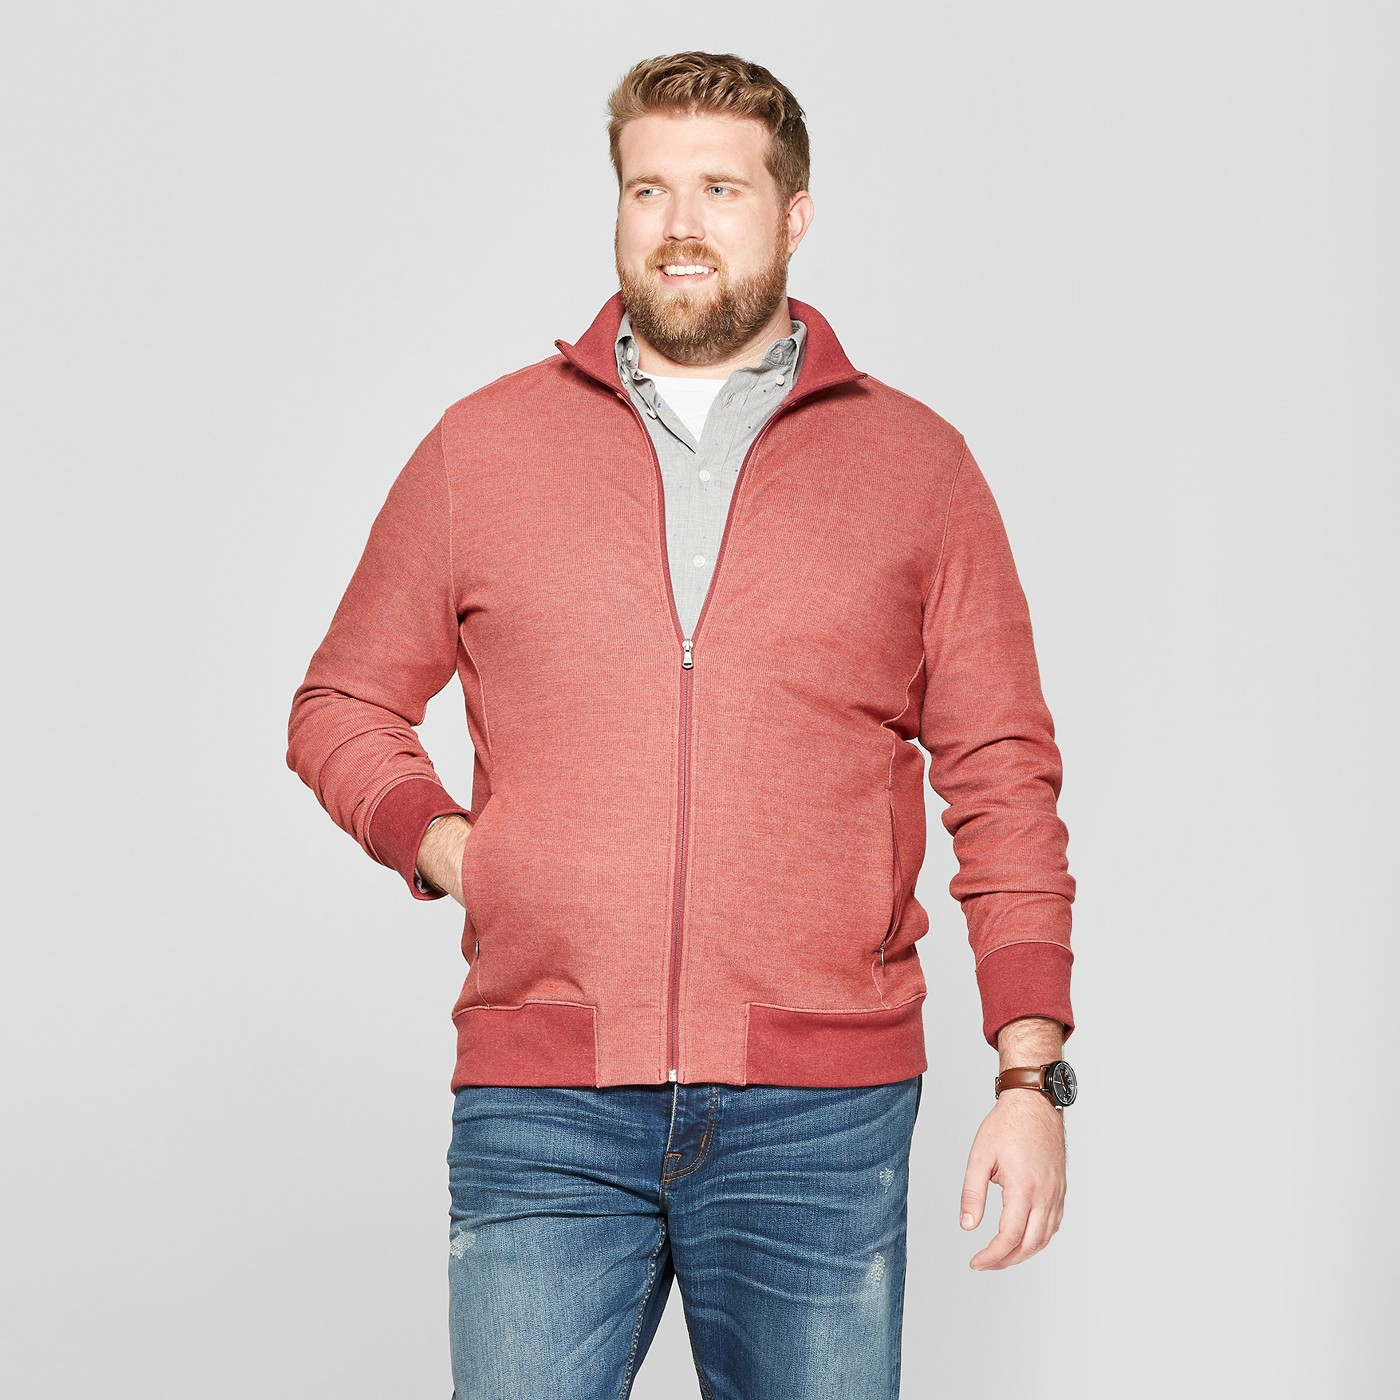 Goodfellow & Co Mens Big & Tall Regular Fit Track Jacket